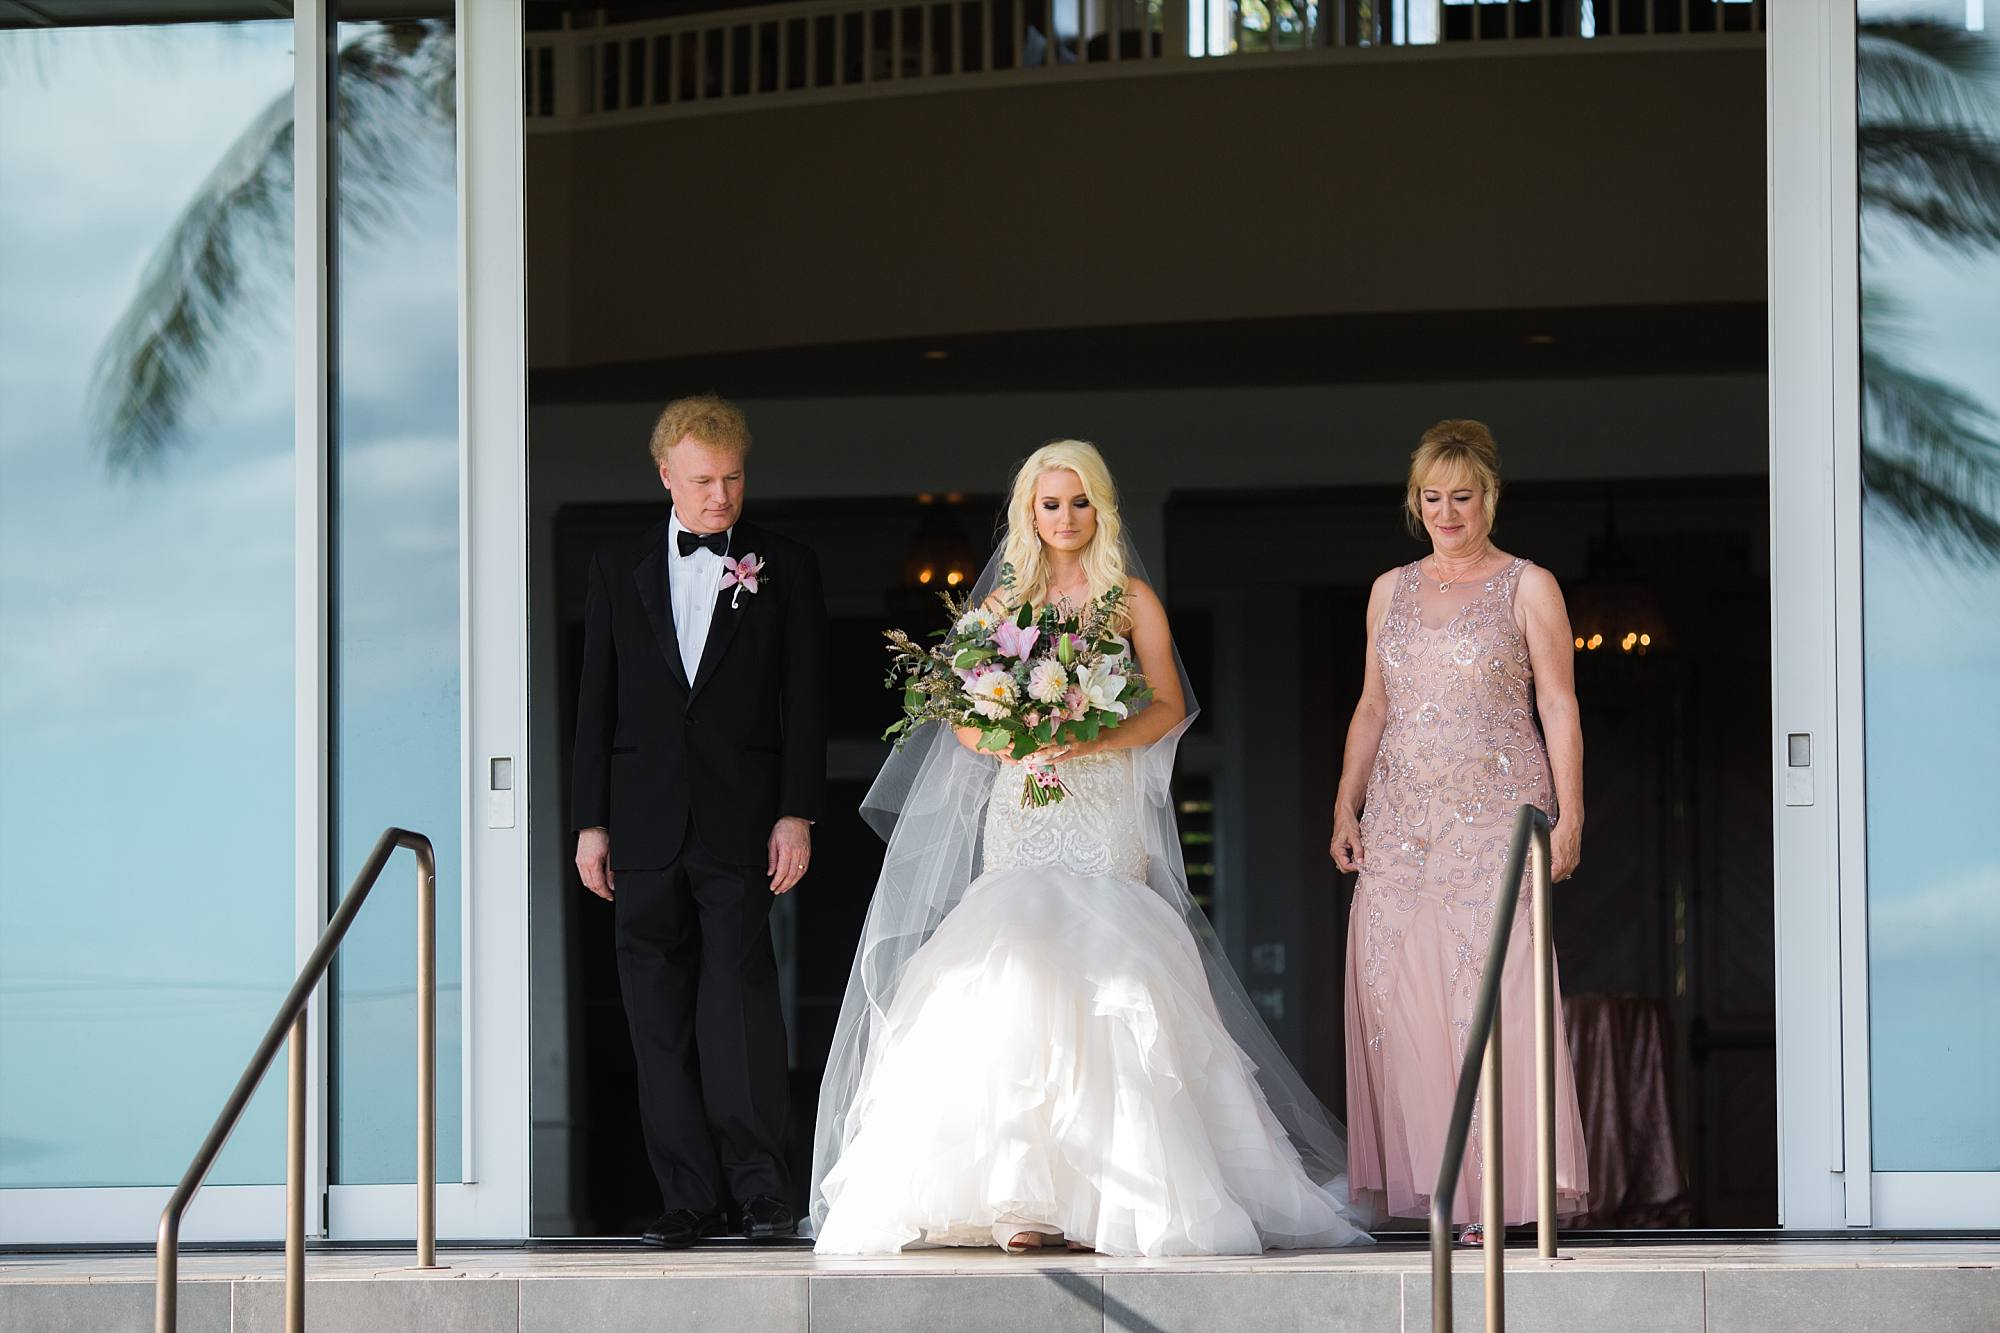 Bride and parents walking out to the ceremony, the first time the crowd wees her